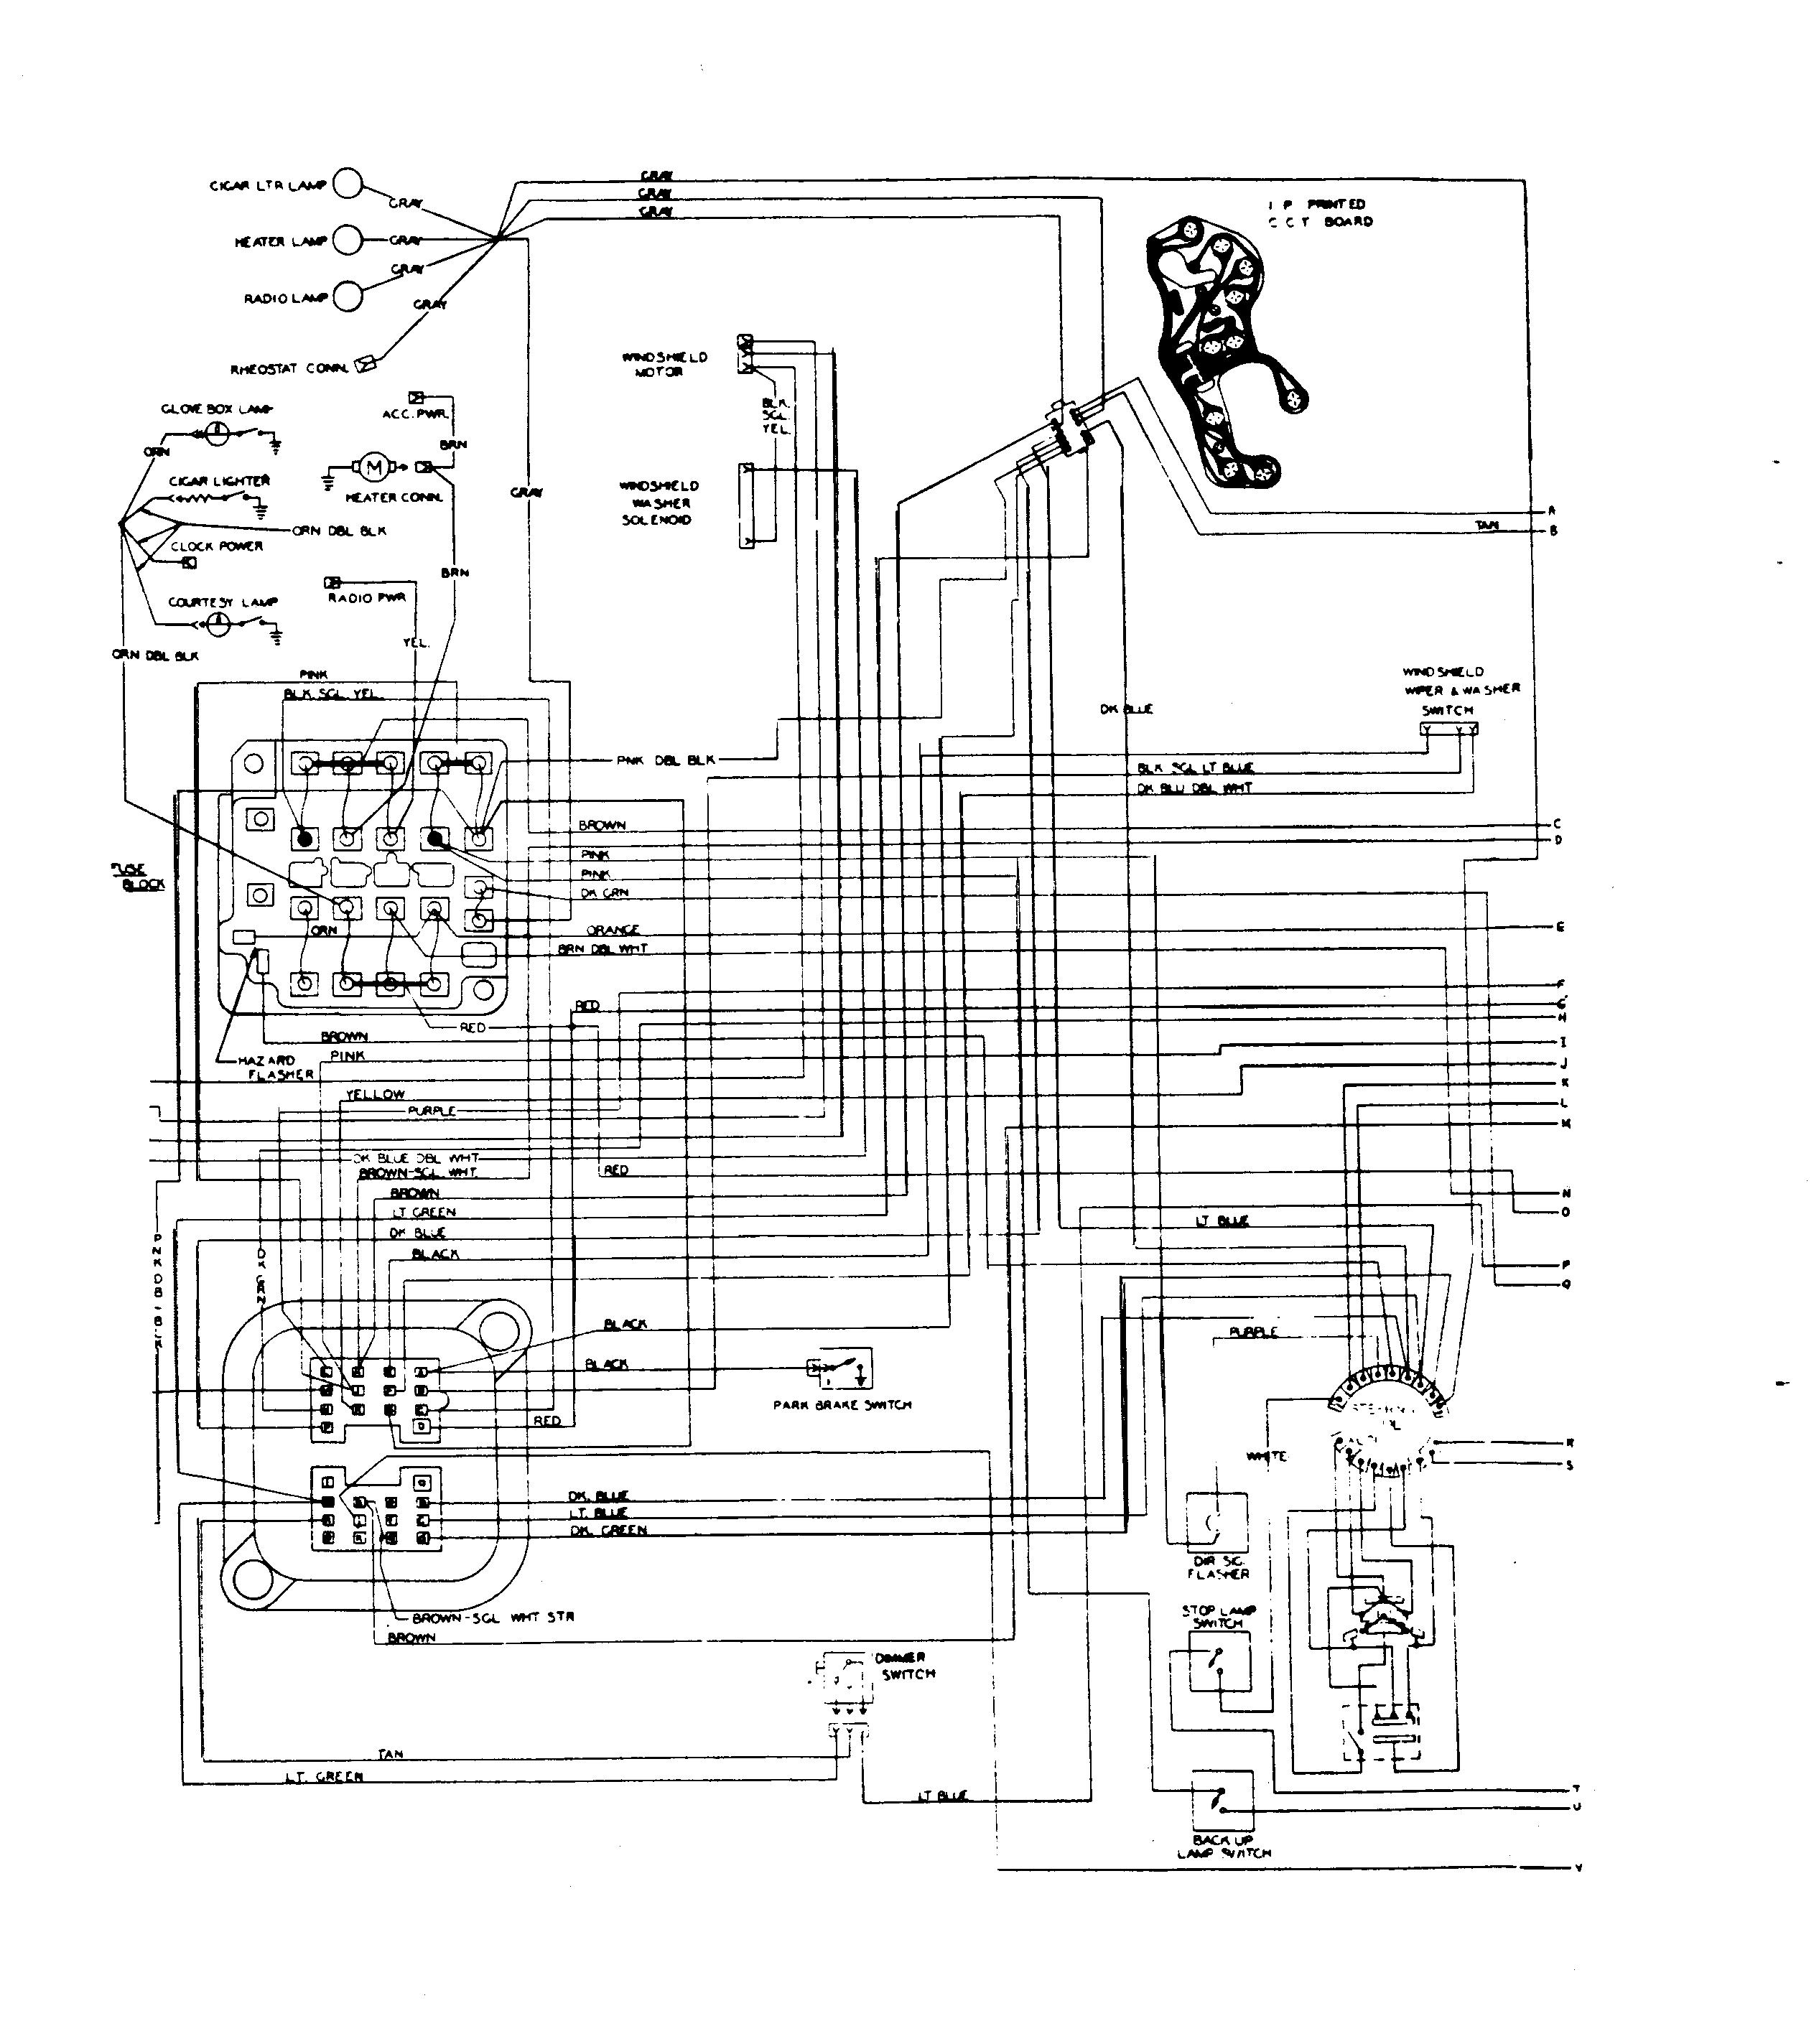 2002 saturn sl1 radio wiring diagram 2002 image 2000 saturn ls2 radio wiring diagram wiring diagrams and schematics on 2002 saturn sl1 radio wiring